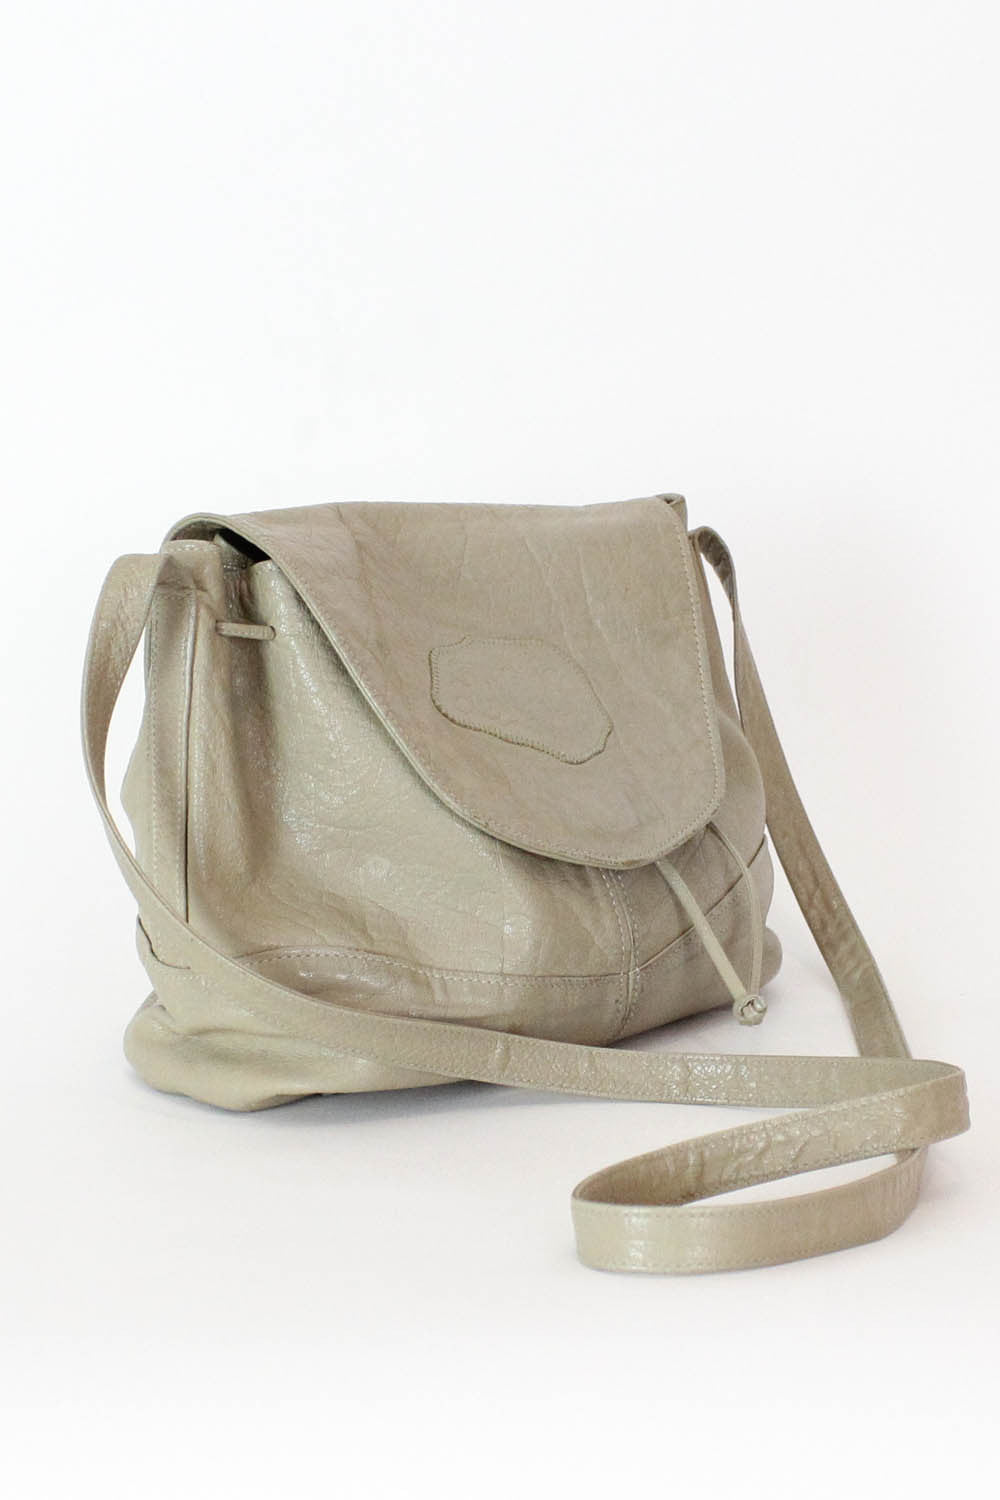 Carlos Falchi Pebbly Leather Taupe Cinch Purse